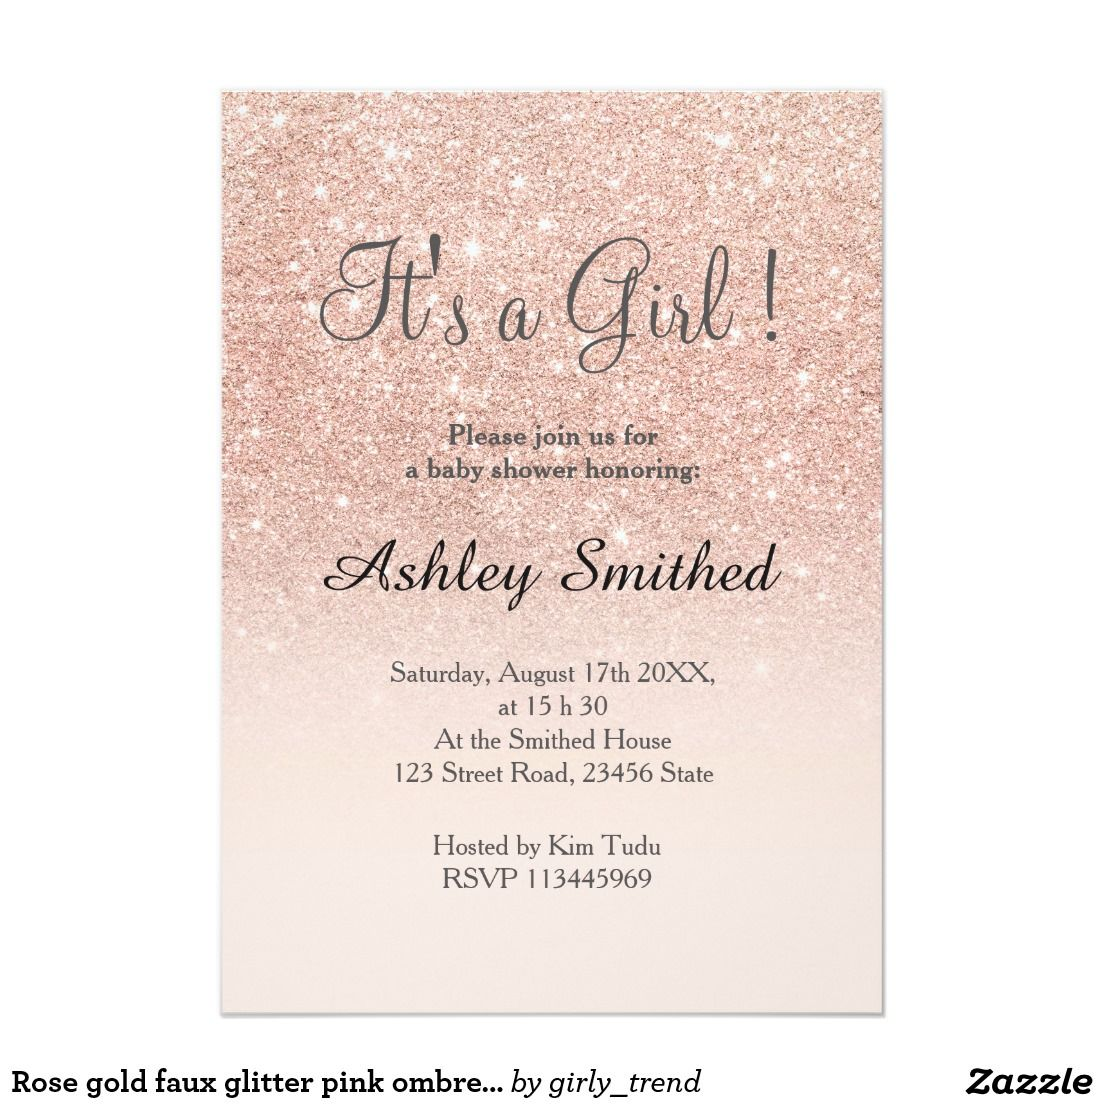 Rose gold faux glitter pink ombre girl baby shower card | Baby ...